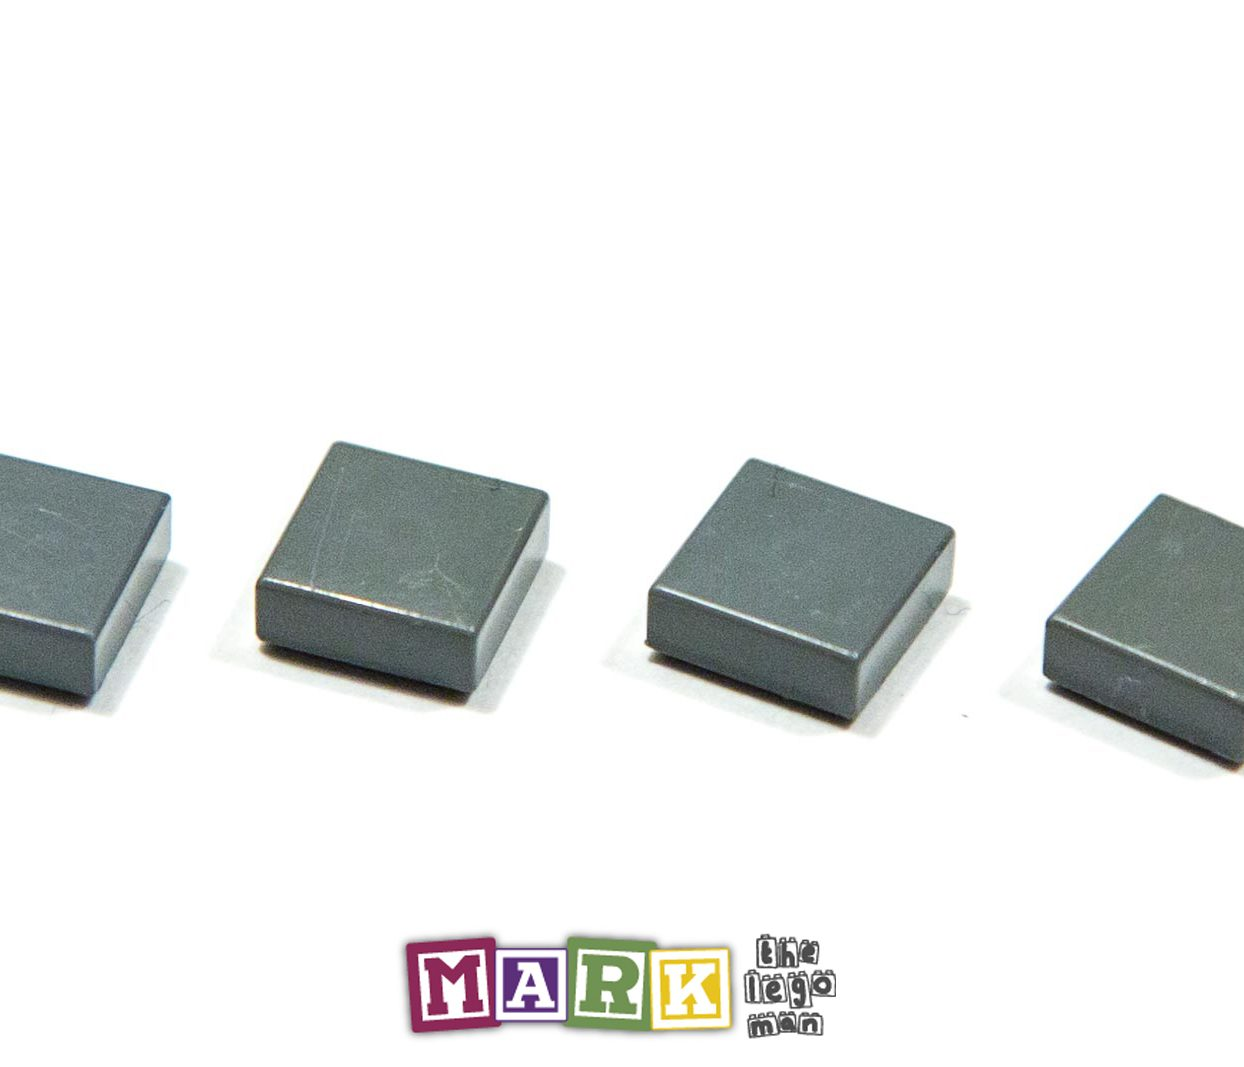 Pack of 4 Lego 3070 1x1 Flat Tile 4210848